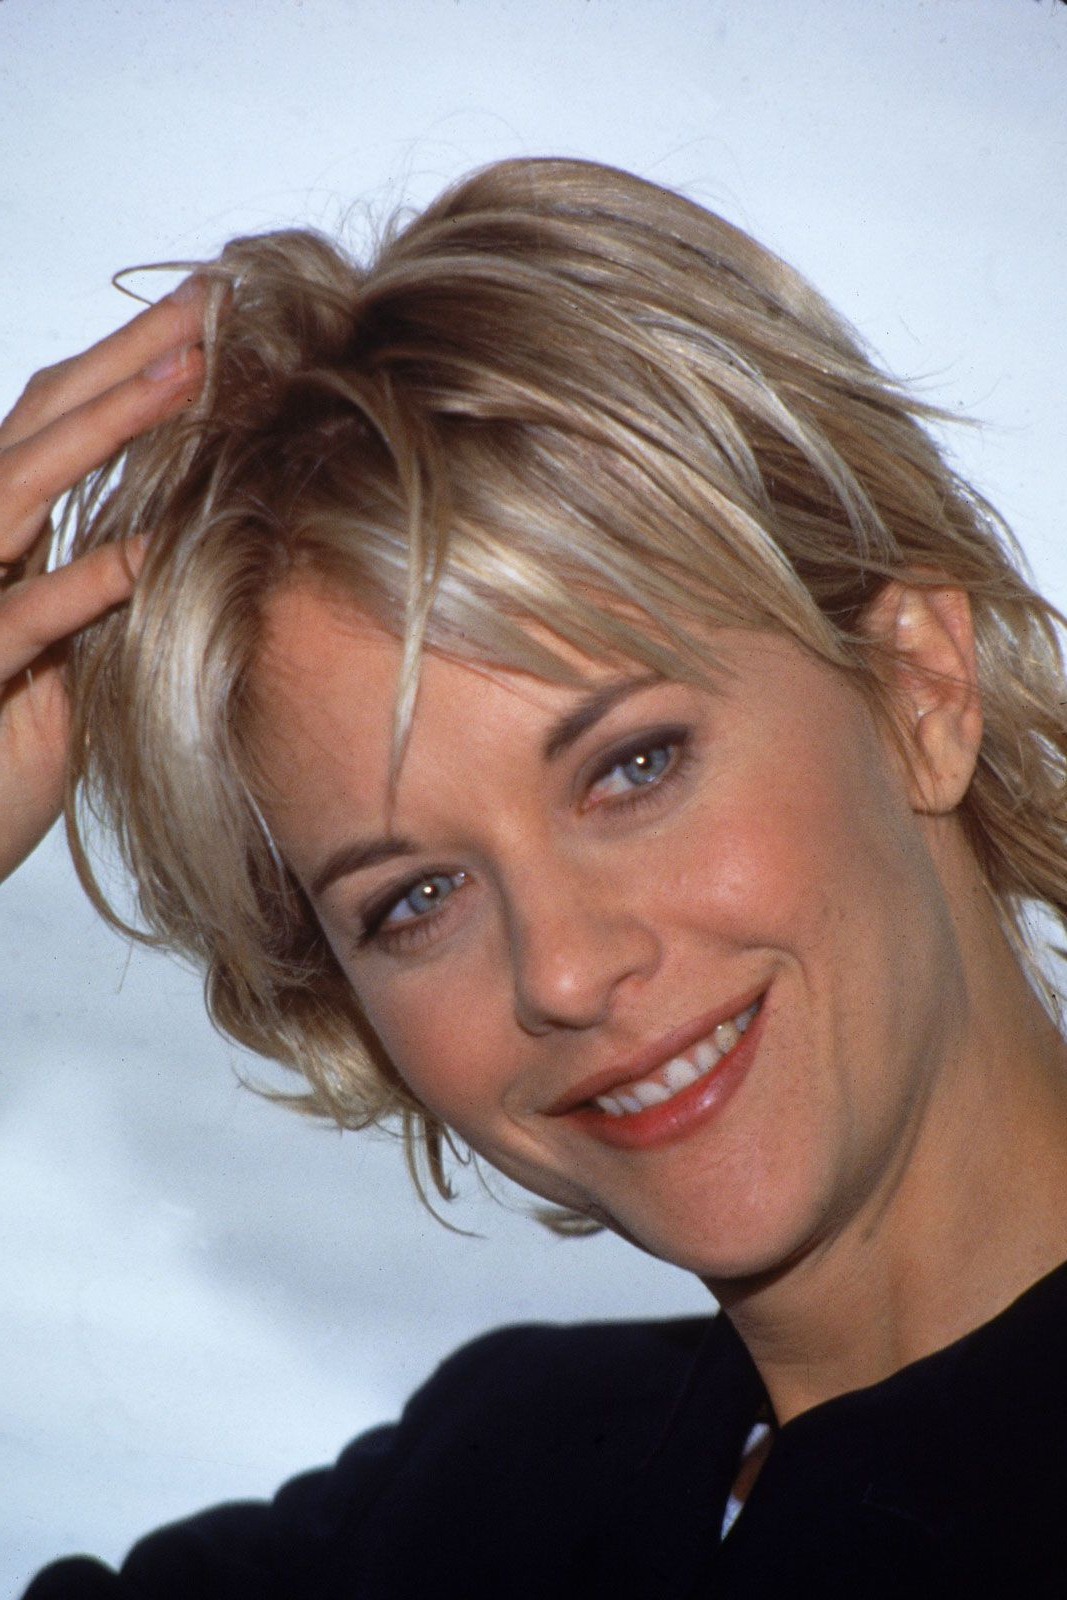 Popular Hairstyles Celebrity Photos Over The Years With Regard To Spunky Short Hairstyles (View 17 of 25)